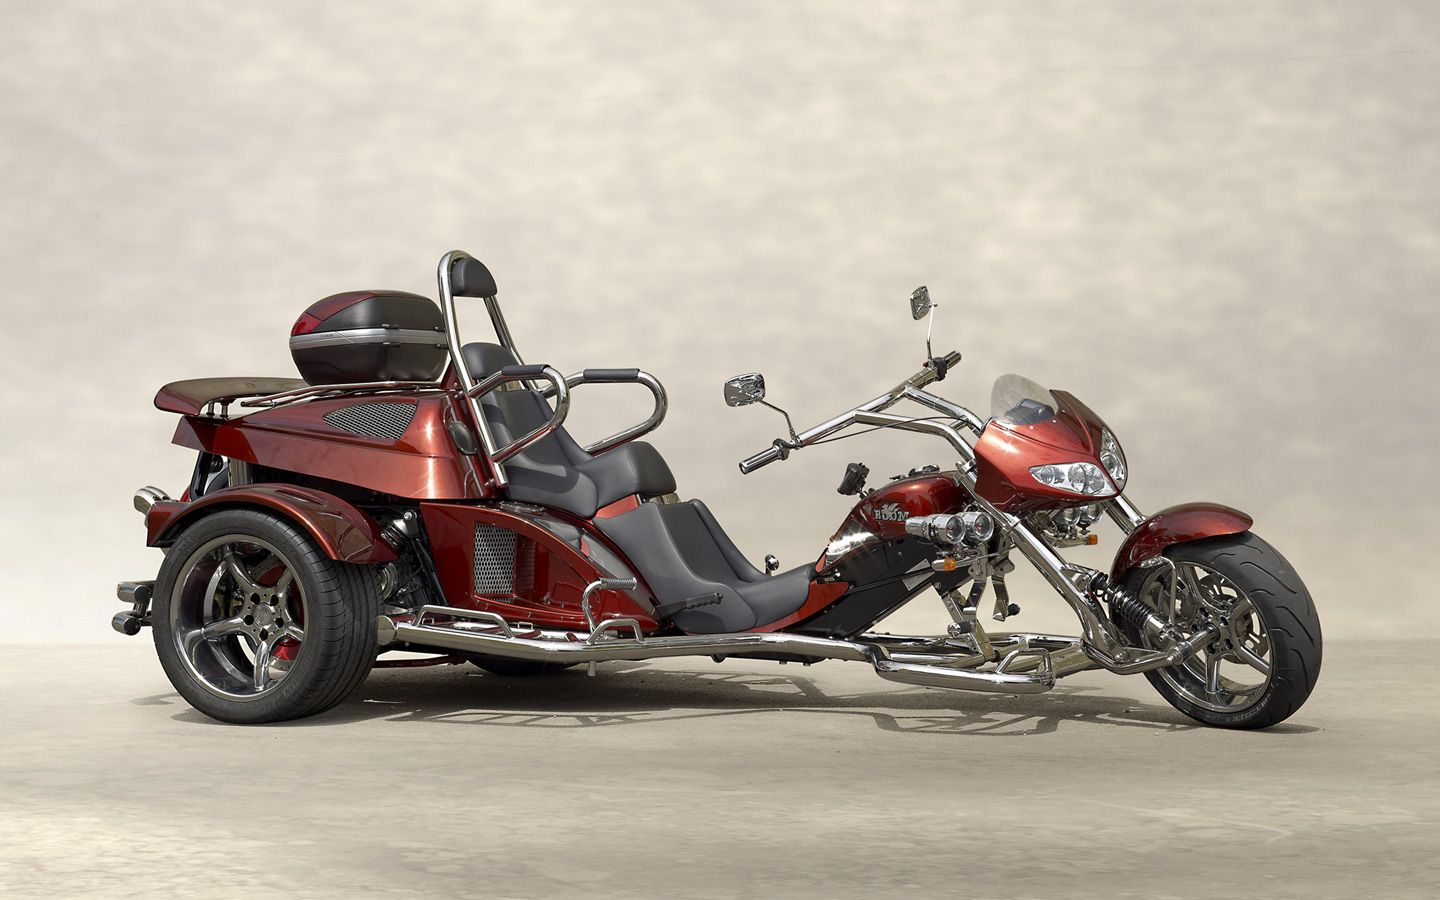 2017 boom fighter x11 trike is the biggest boom trike is called king